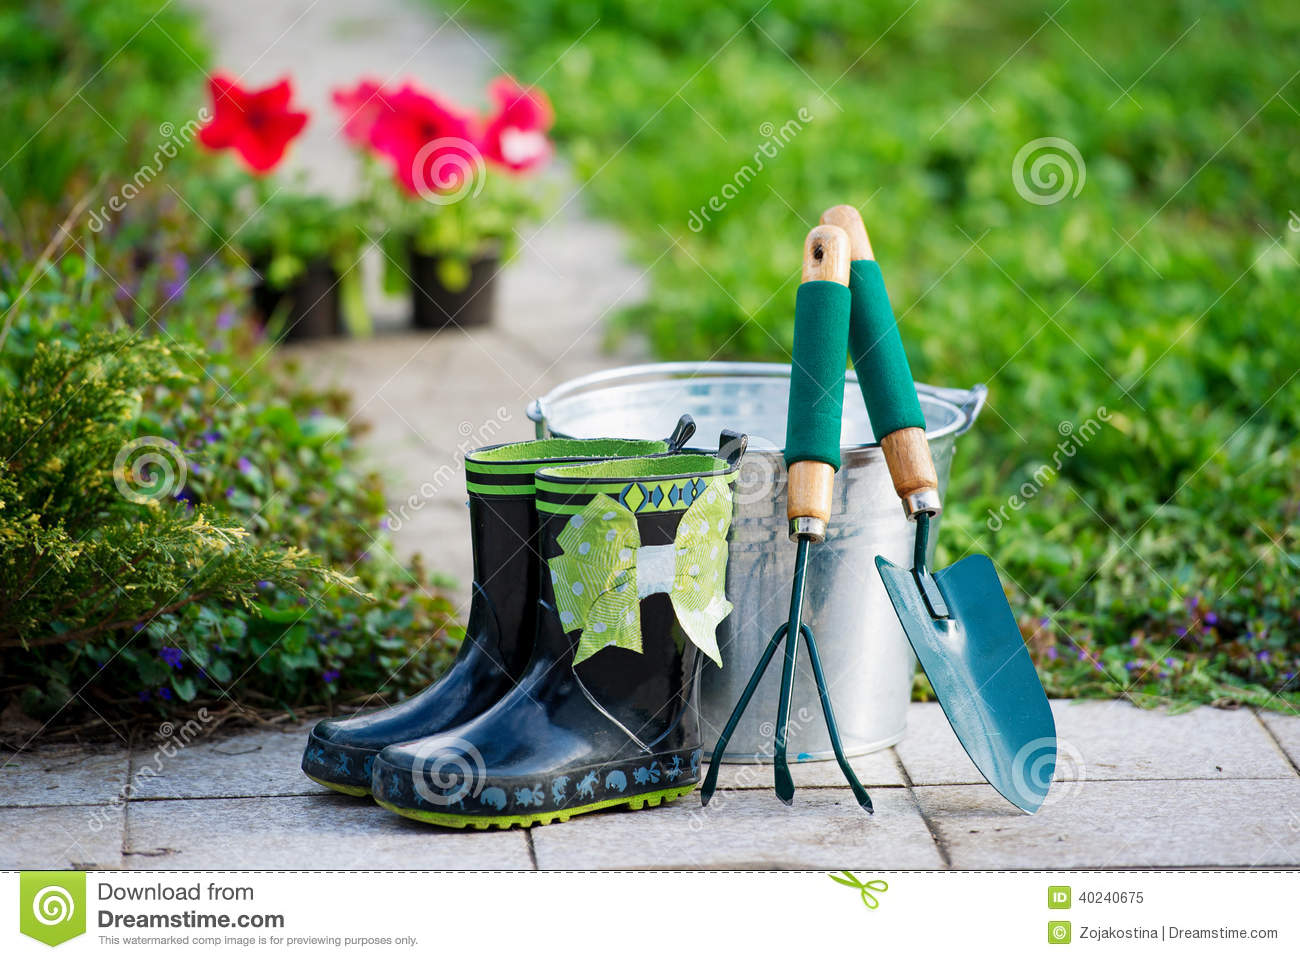 Small Rain Boots And Garden Tools Stock Photo - Image: 40240675